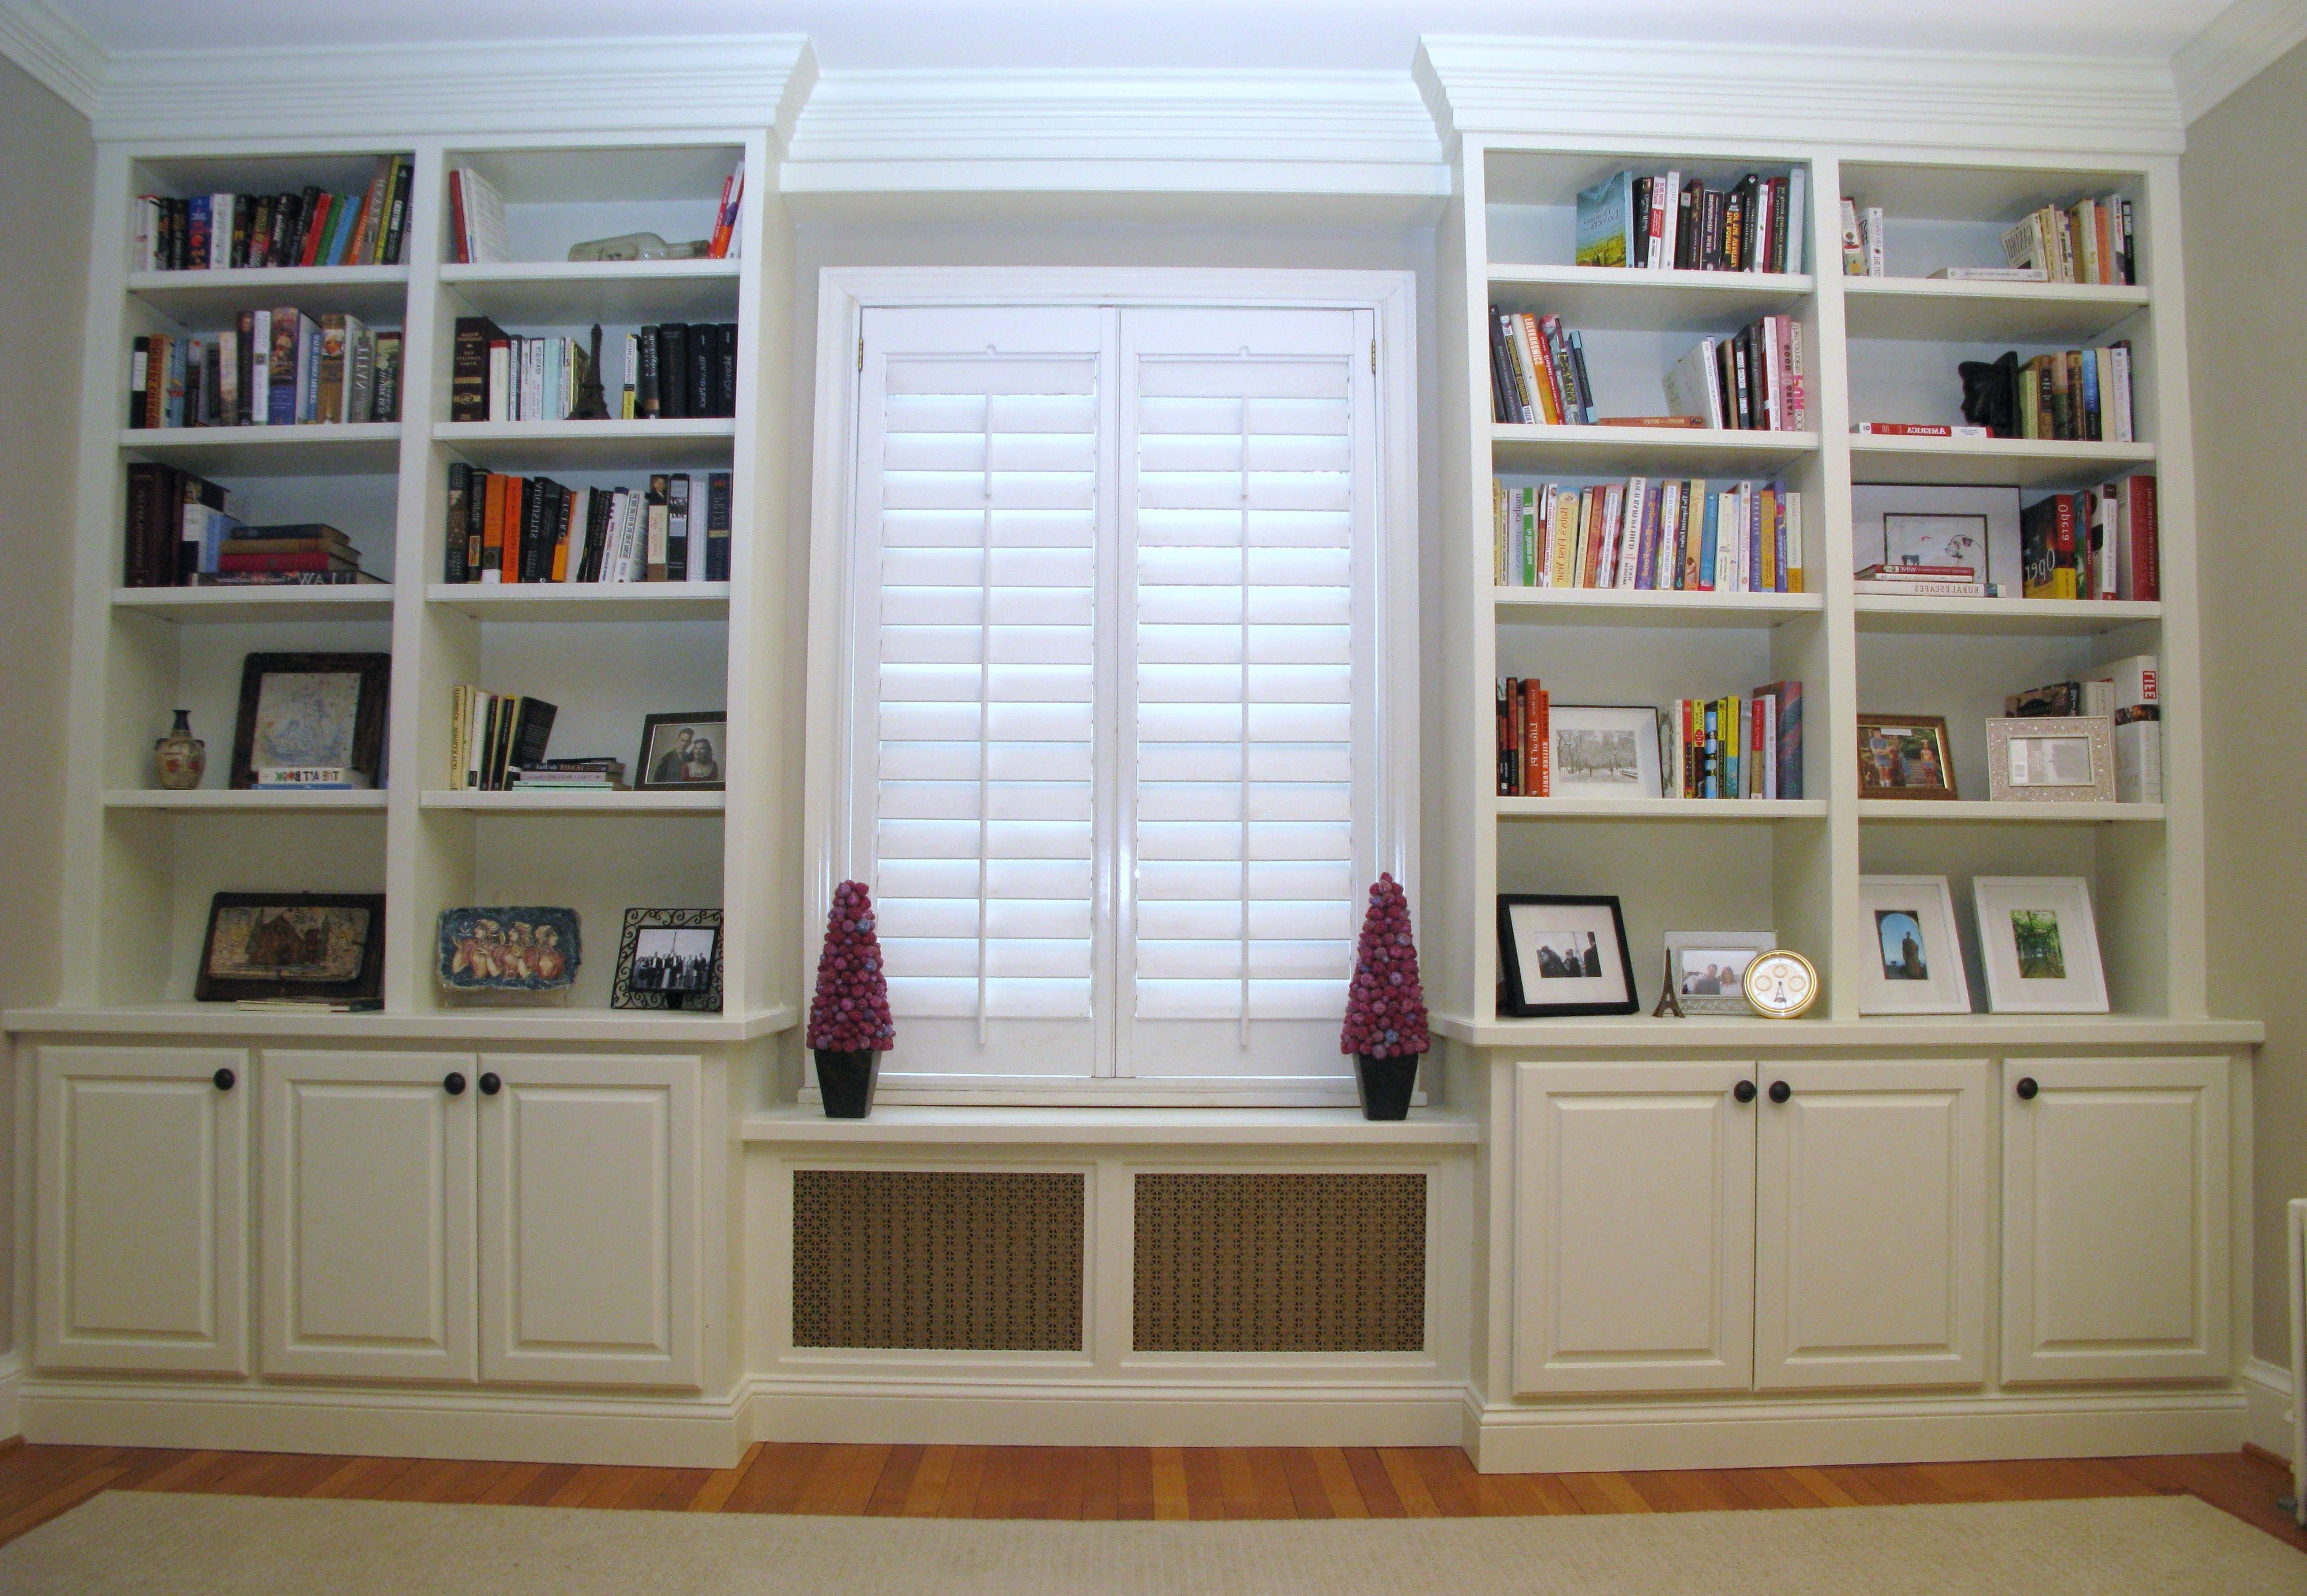 Washington Dc Custom Radiator Cover Contractor, Remodeling Within Trendy Radiator Cover And Bookcases (View 13 of 15)